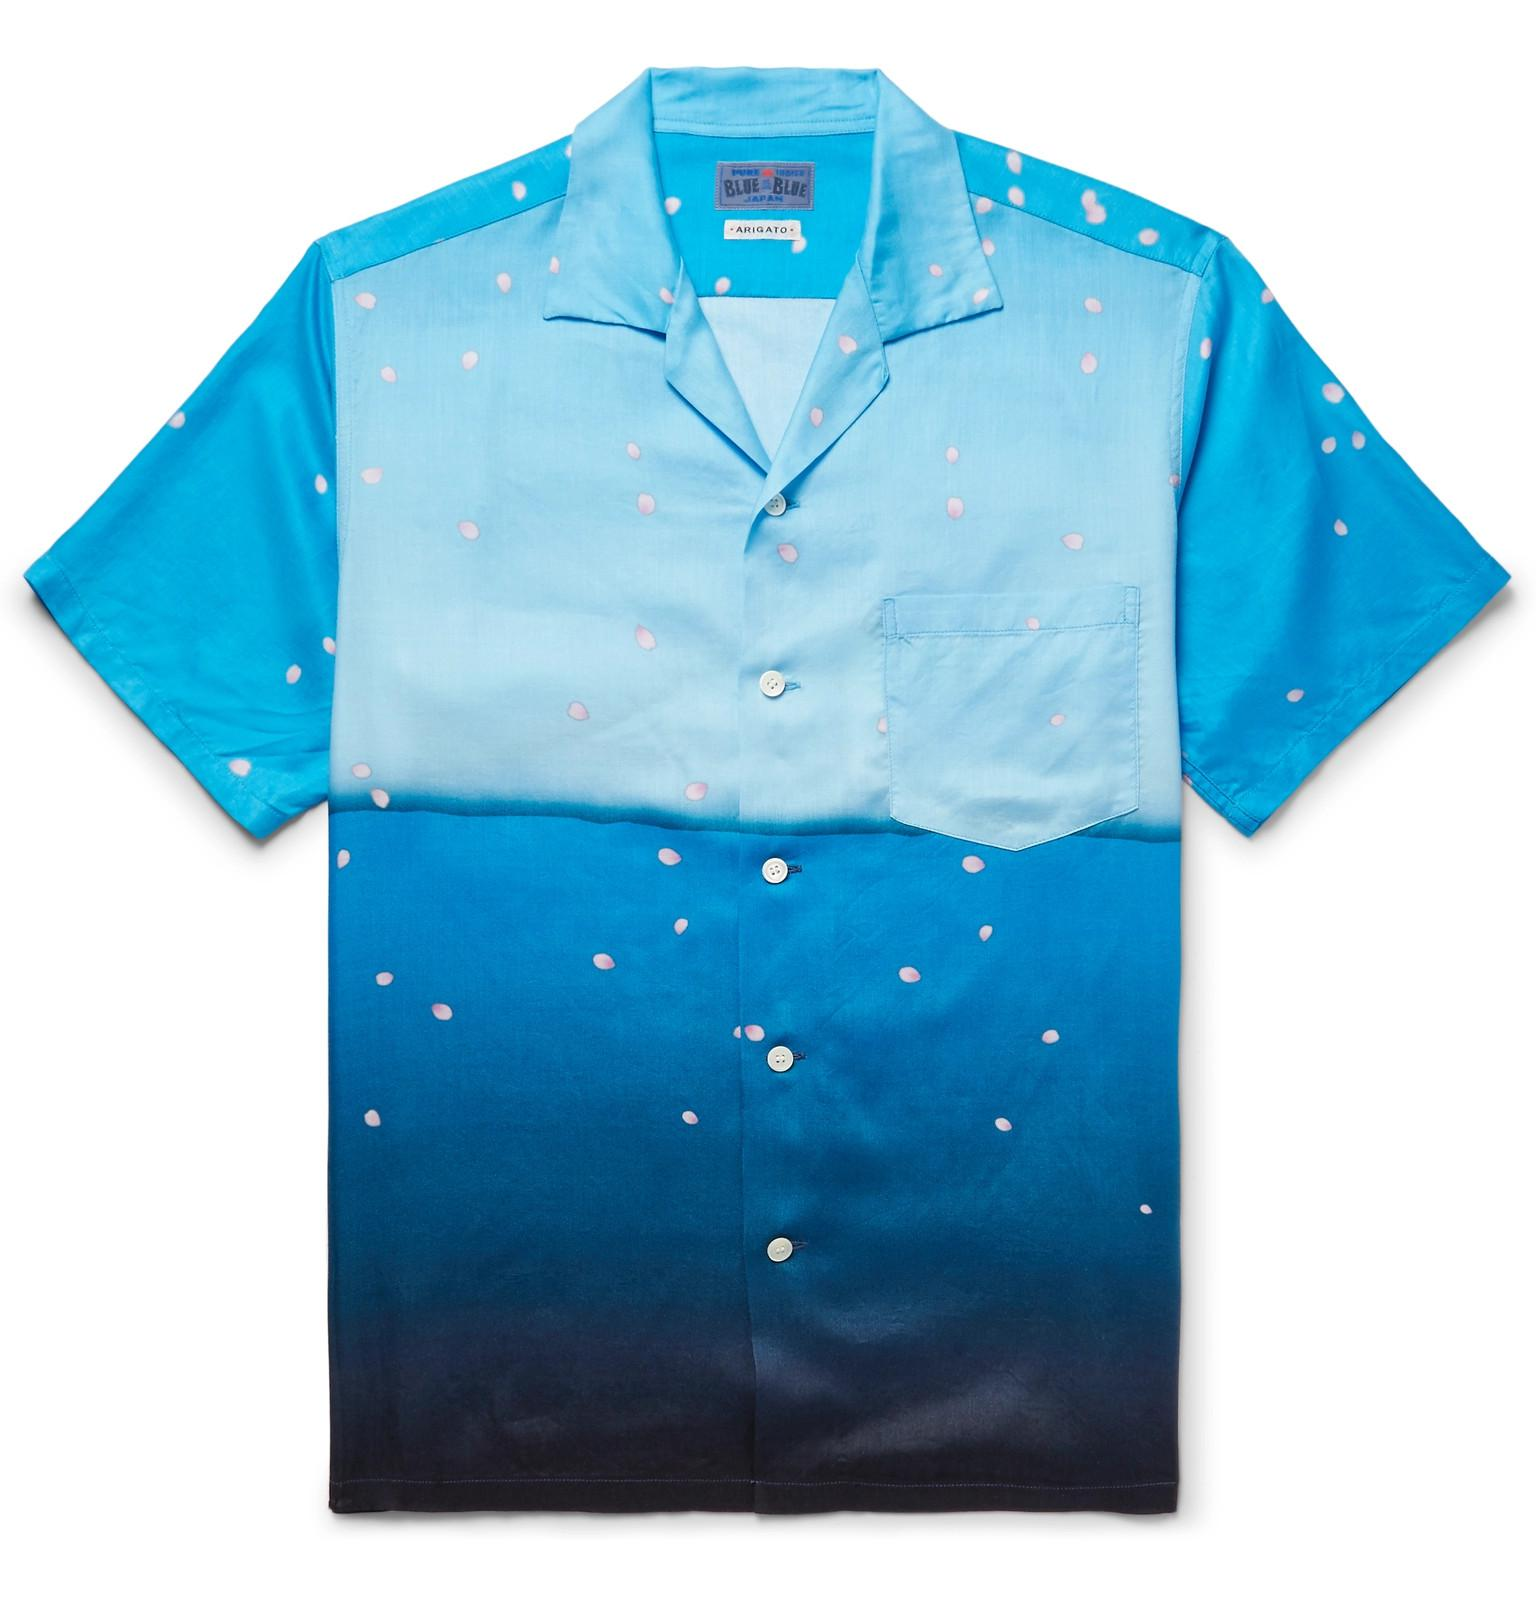 Slim-fit Camp-collar Printed Cotton-gauze Shirt Blue Blue Japan Buy Cheap Deals Cheap Fast Delivery Sale Collections Free Shipping Excellent iZ5hzJI9Z